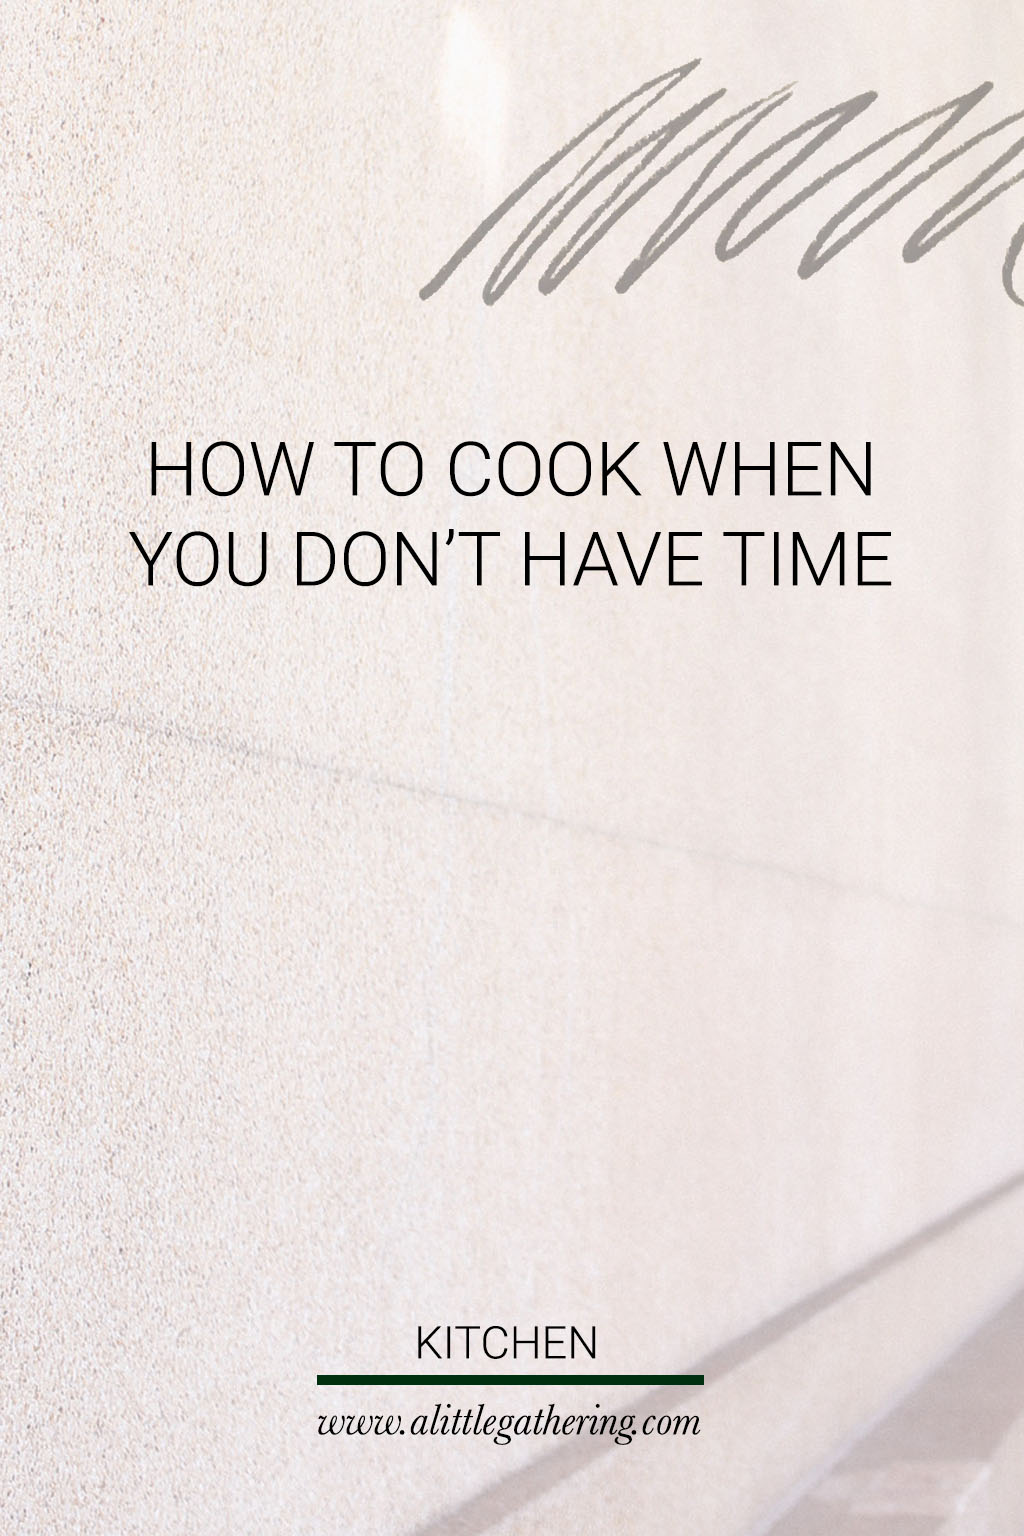 how to cook when you don't have the time // a little gathering